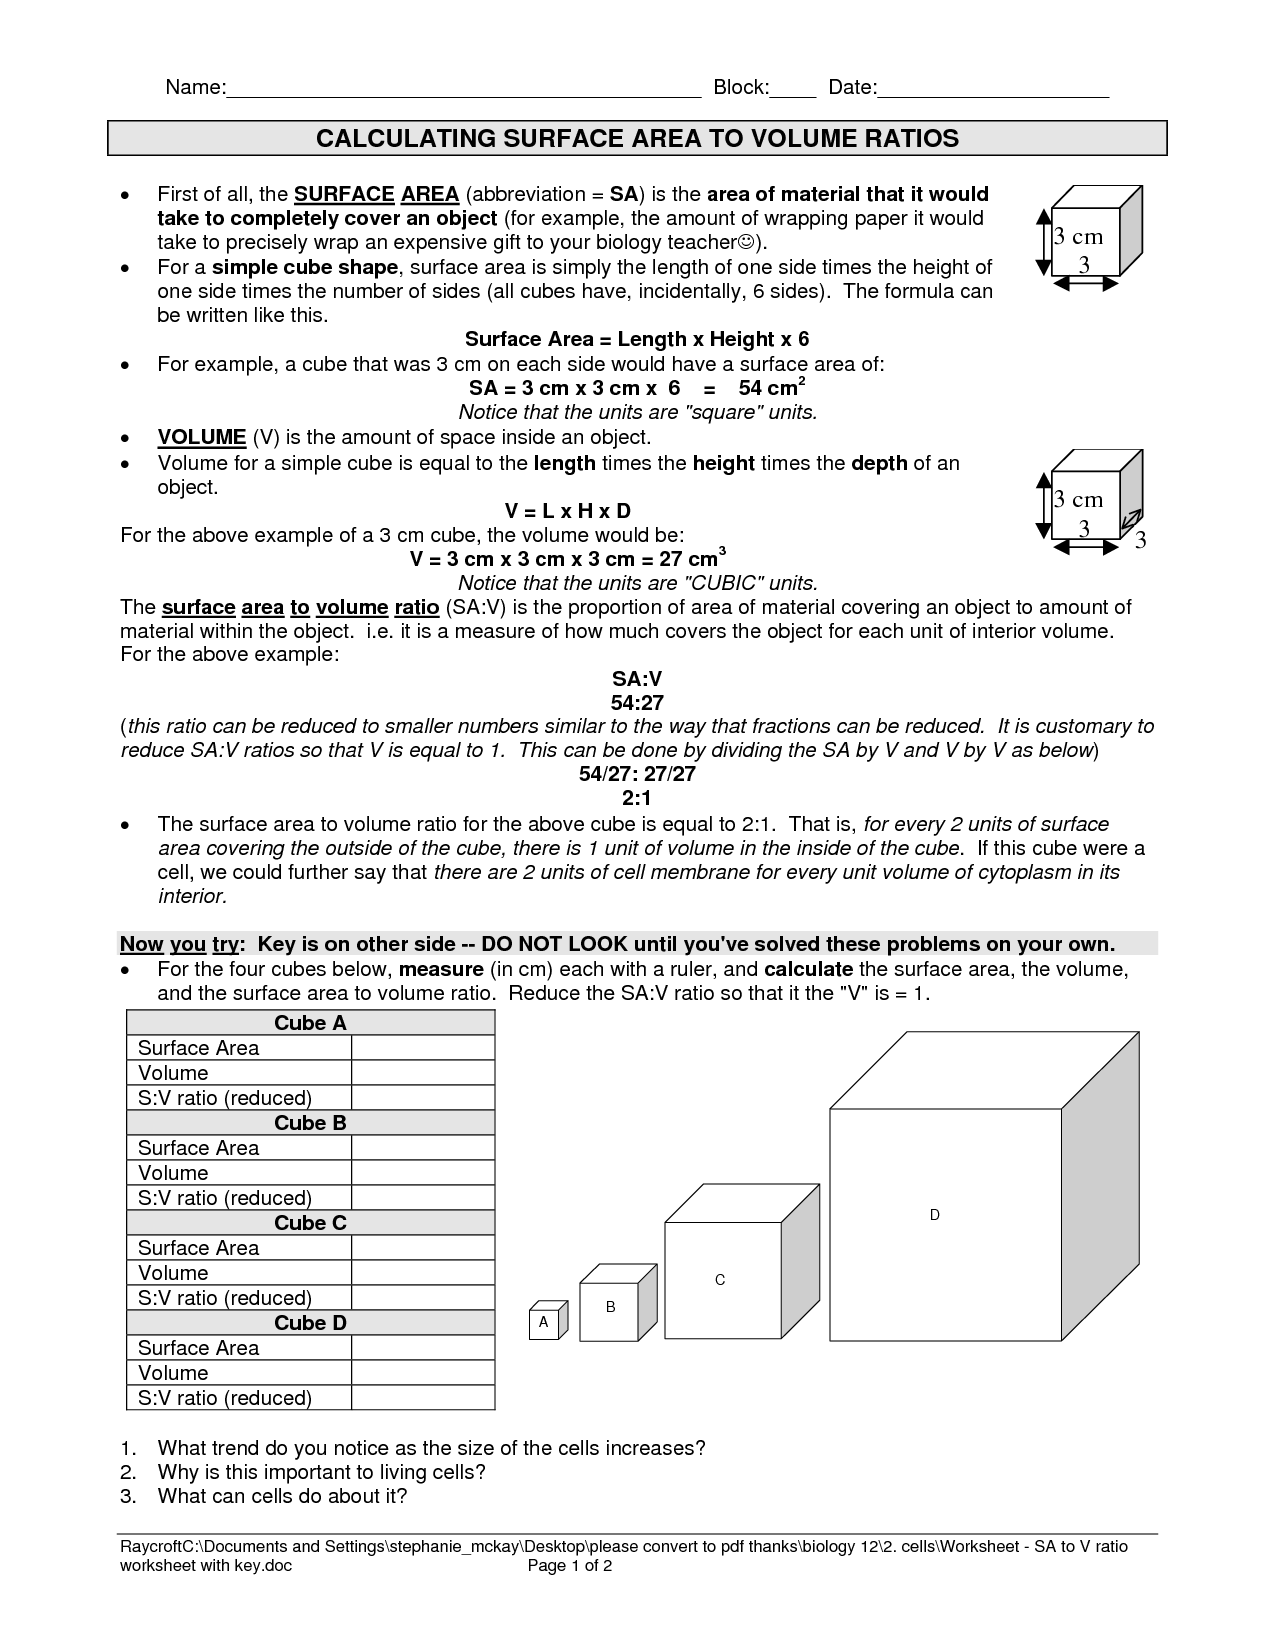 Worksheets Surface Area And Volume Worksheets With Answers surface area and volume worksheets with answers narrativamente search on pinterest